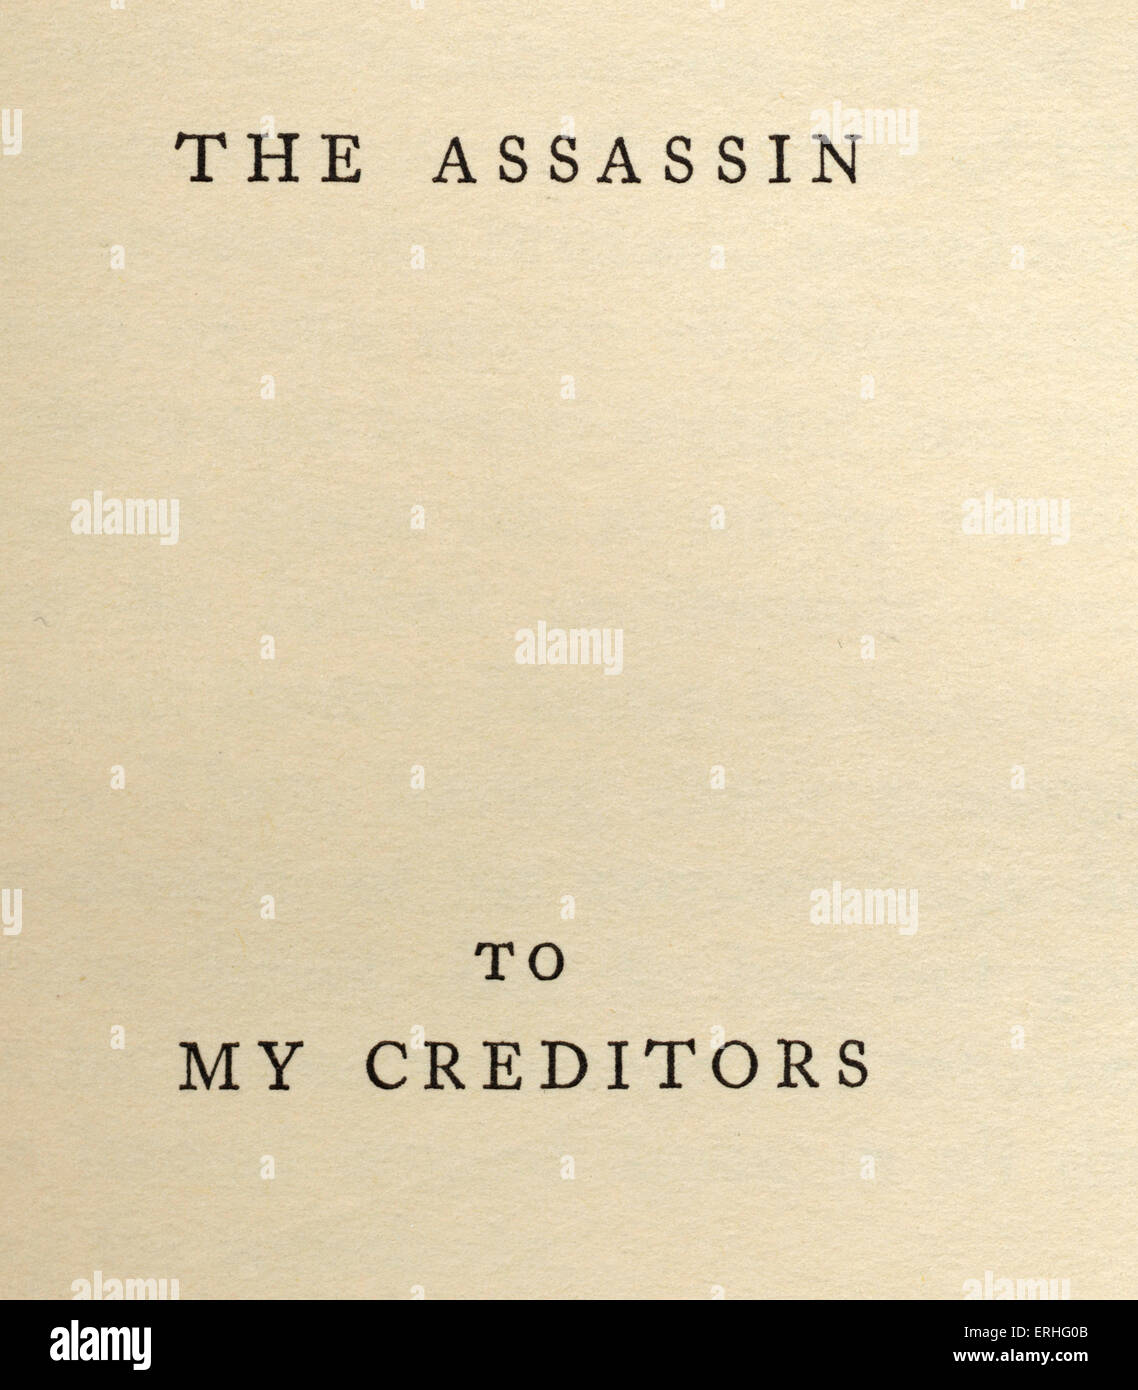 Liam O'Flaherty 's novel 'The Assassin'.  Dedication page  'To My creditors'. Published - Stock Image